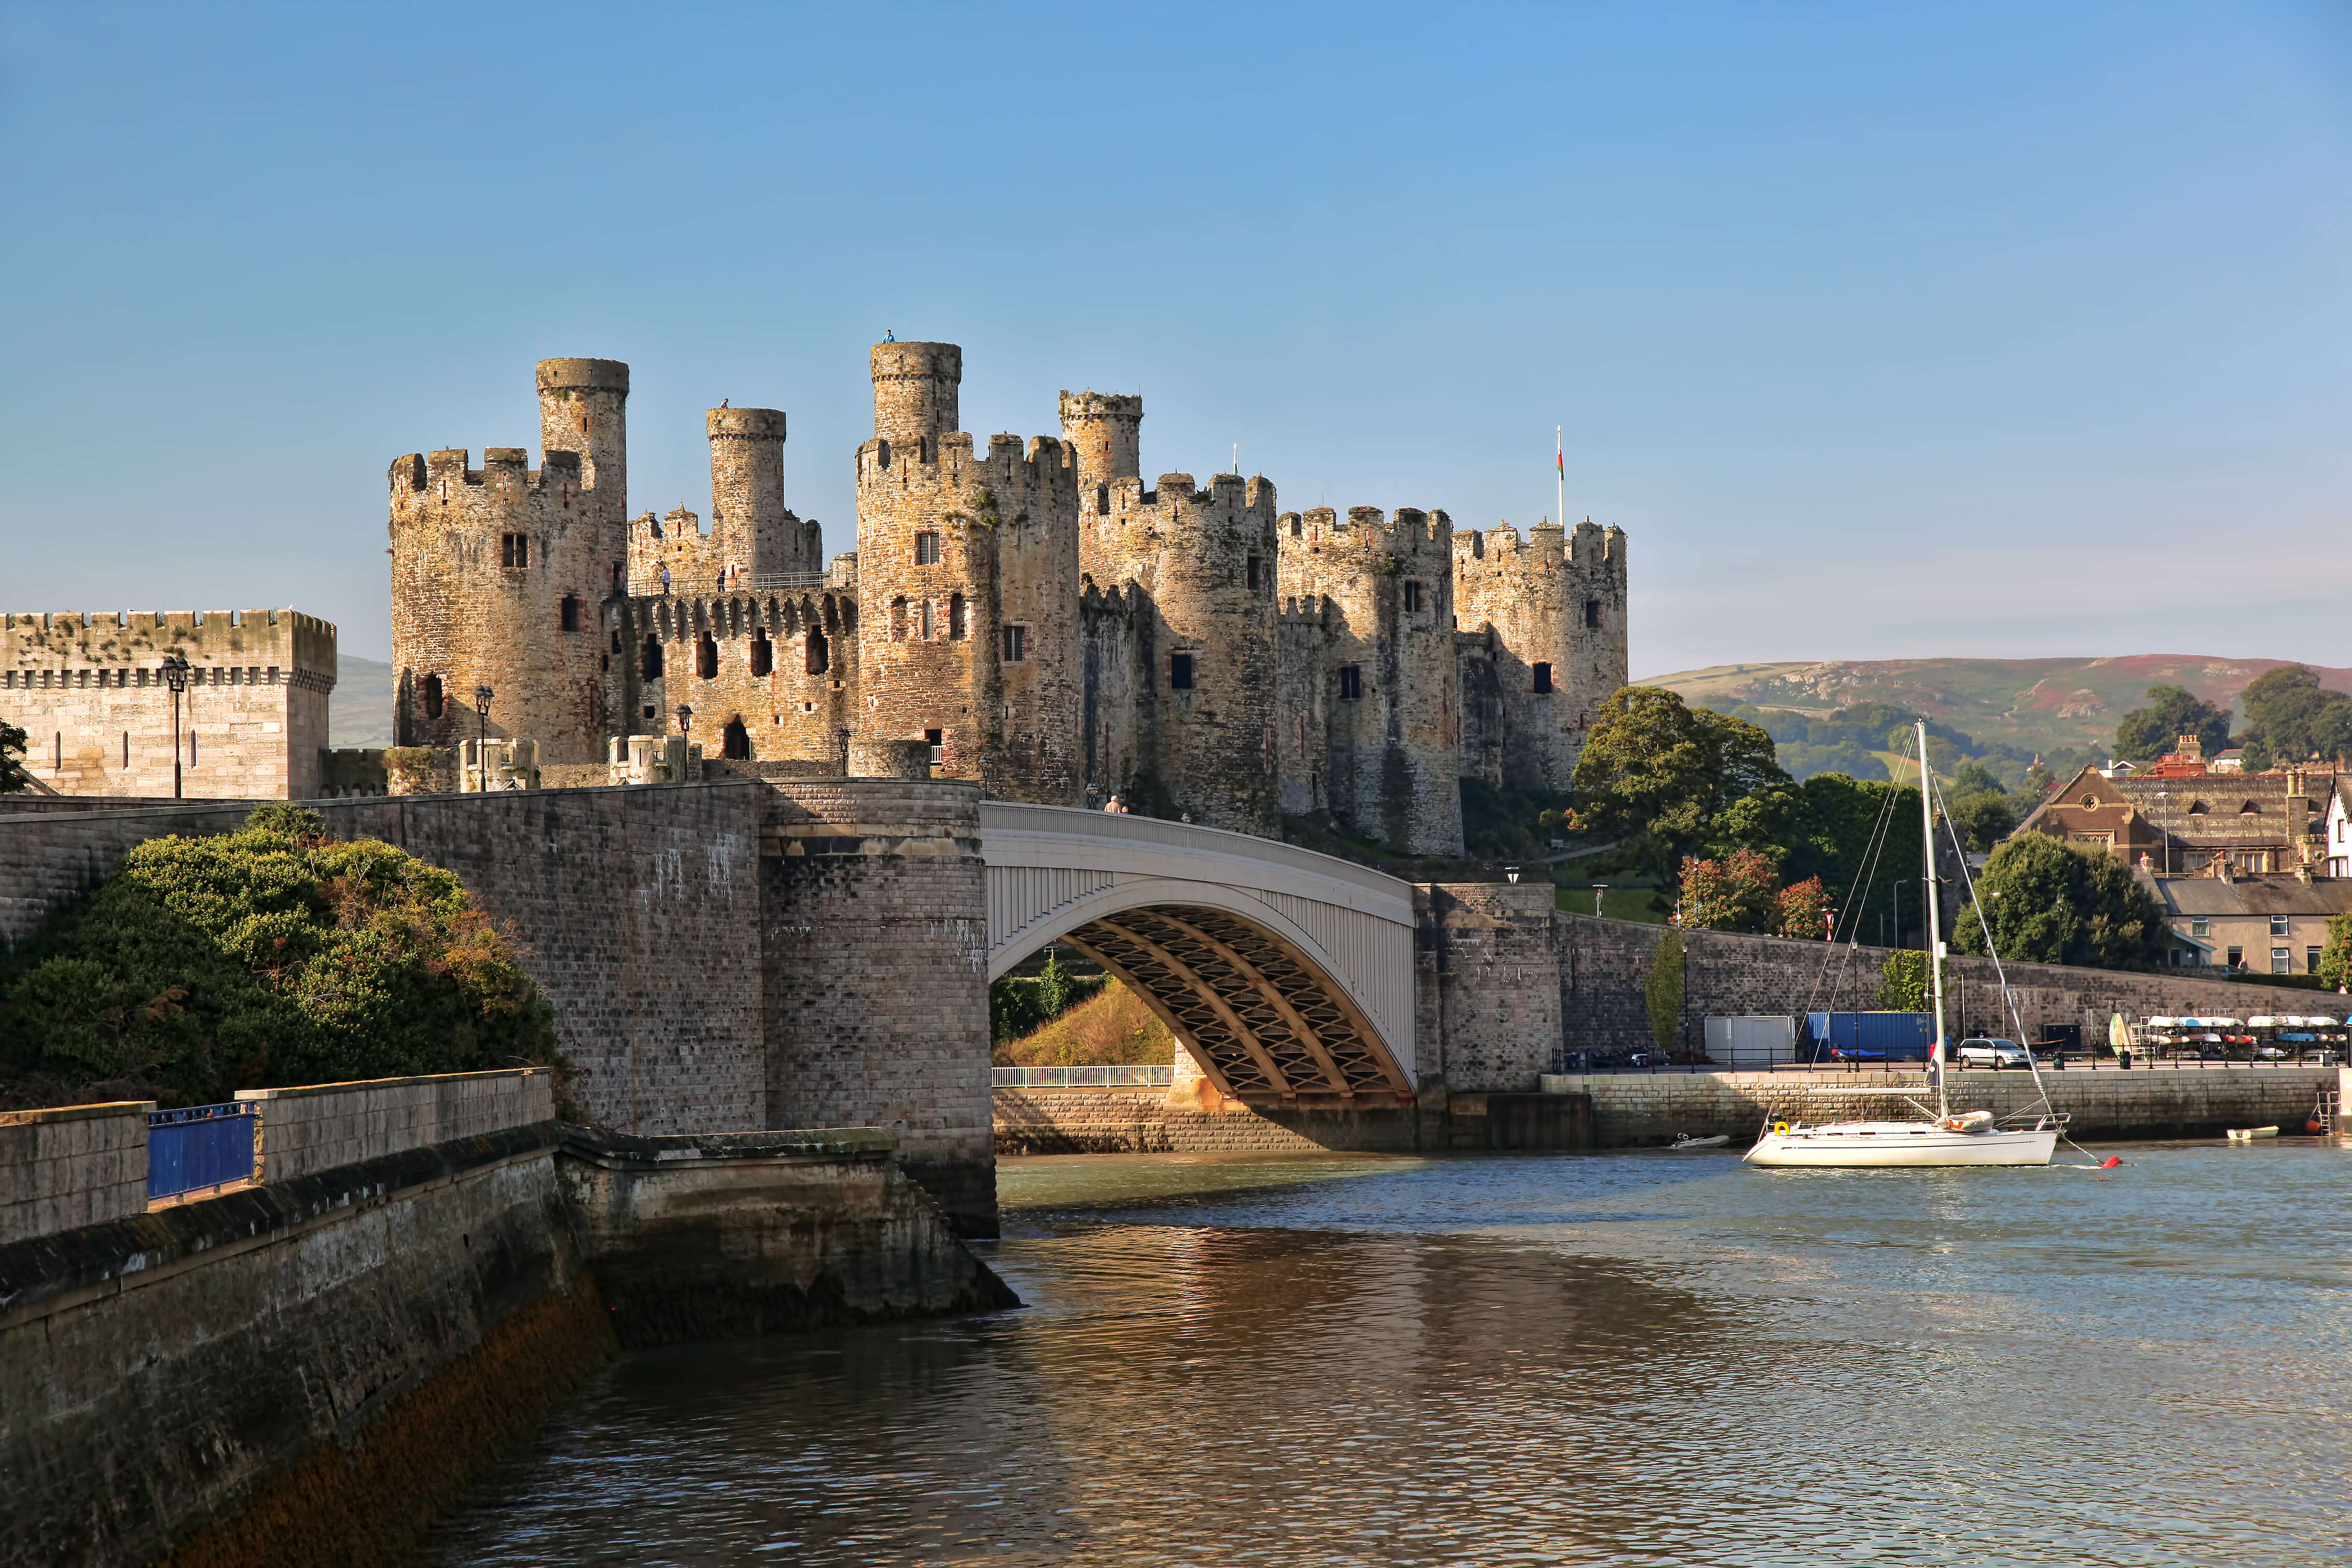 Conwy Castle is a UNESCO-listed medieval castle that is still intact after more than 700 years. Constructed by Edward I in just under four years,